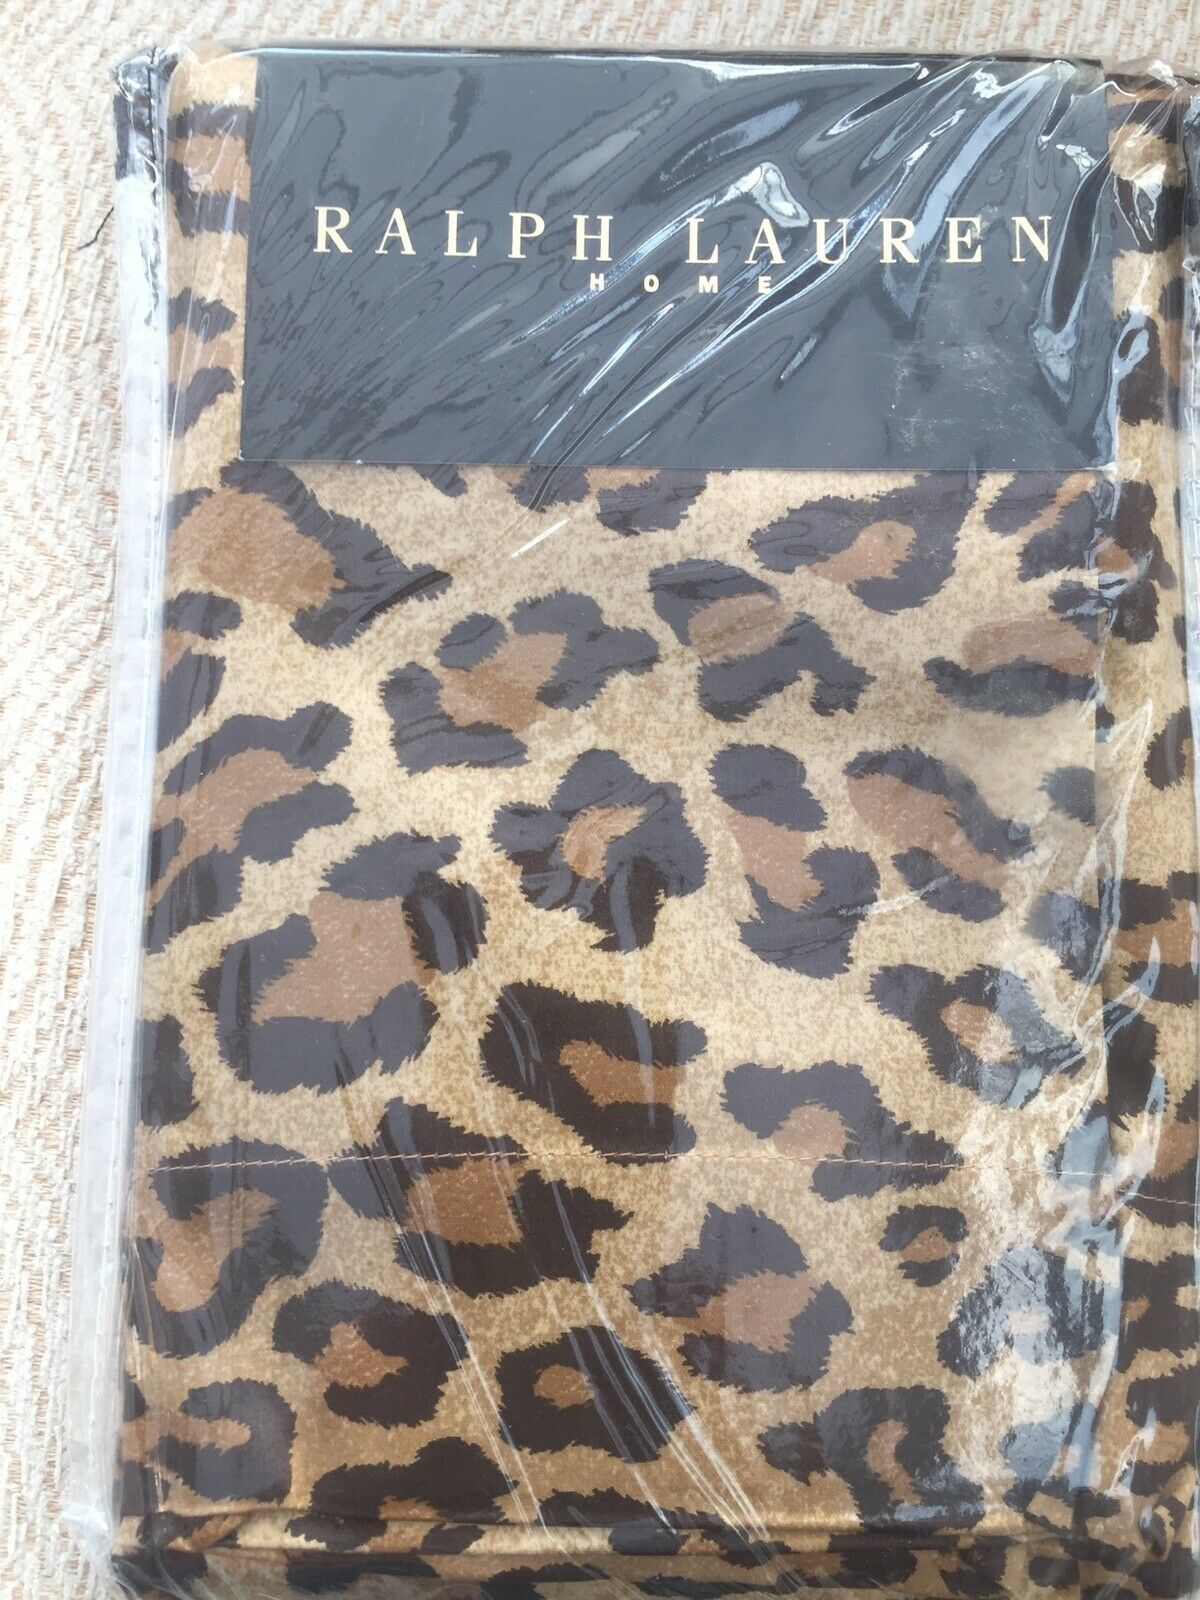 RALPH LAUREN ARAGON SATIN EURO PILLOWCASE